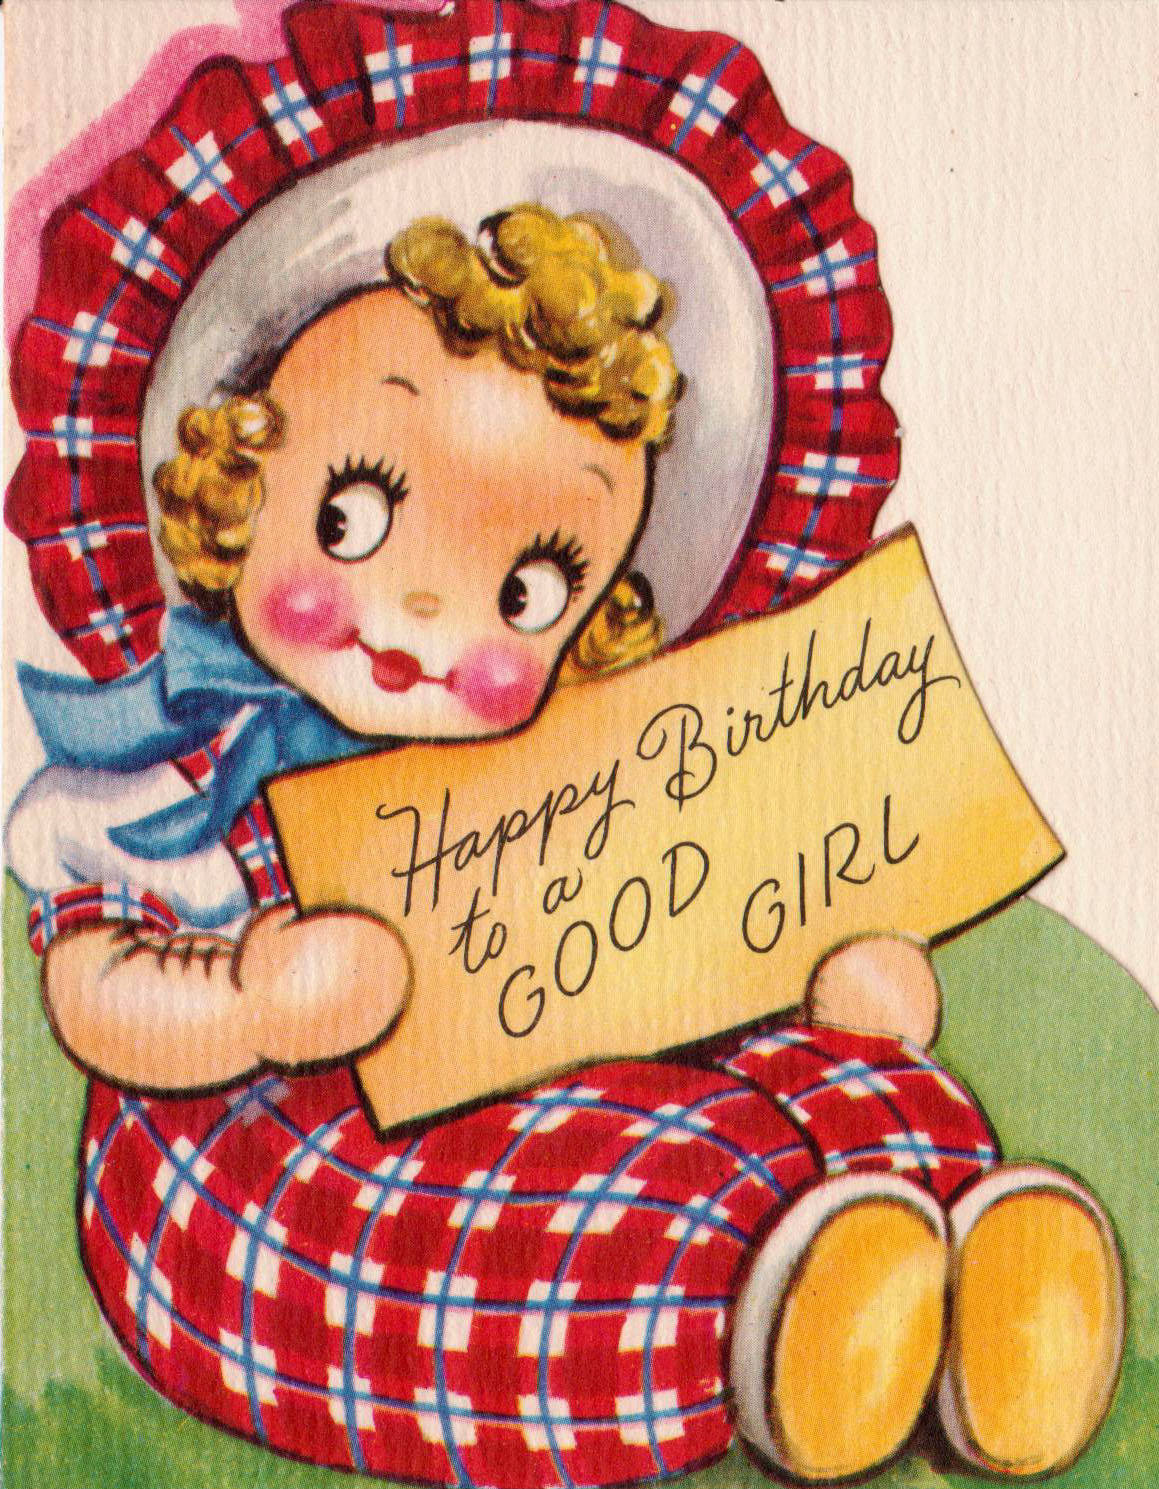 new birthday images free download ; BIRTHDAY+BABY+HD+WALLPAPERS